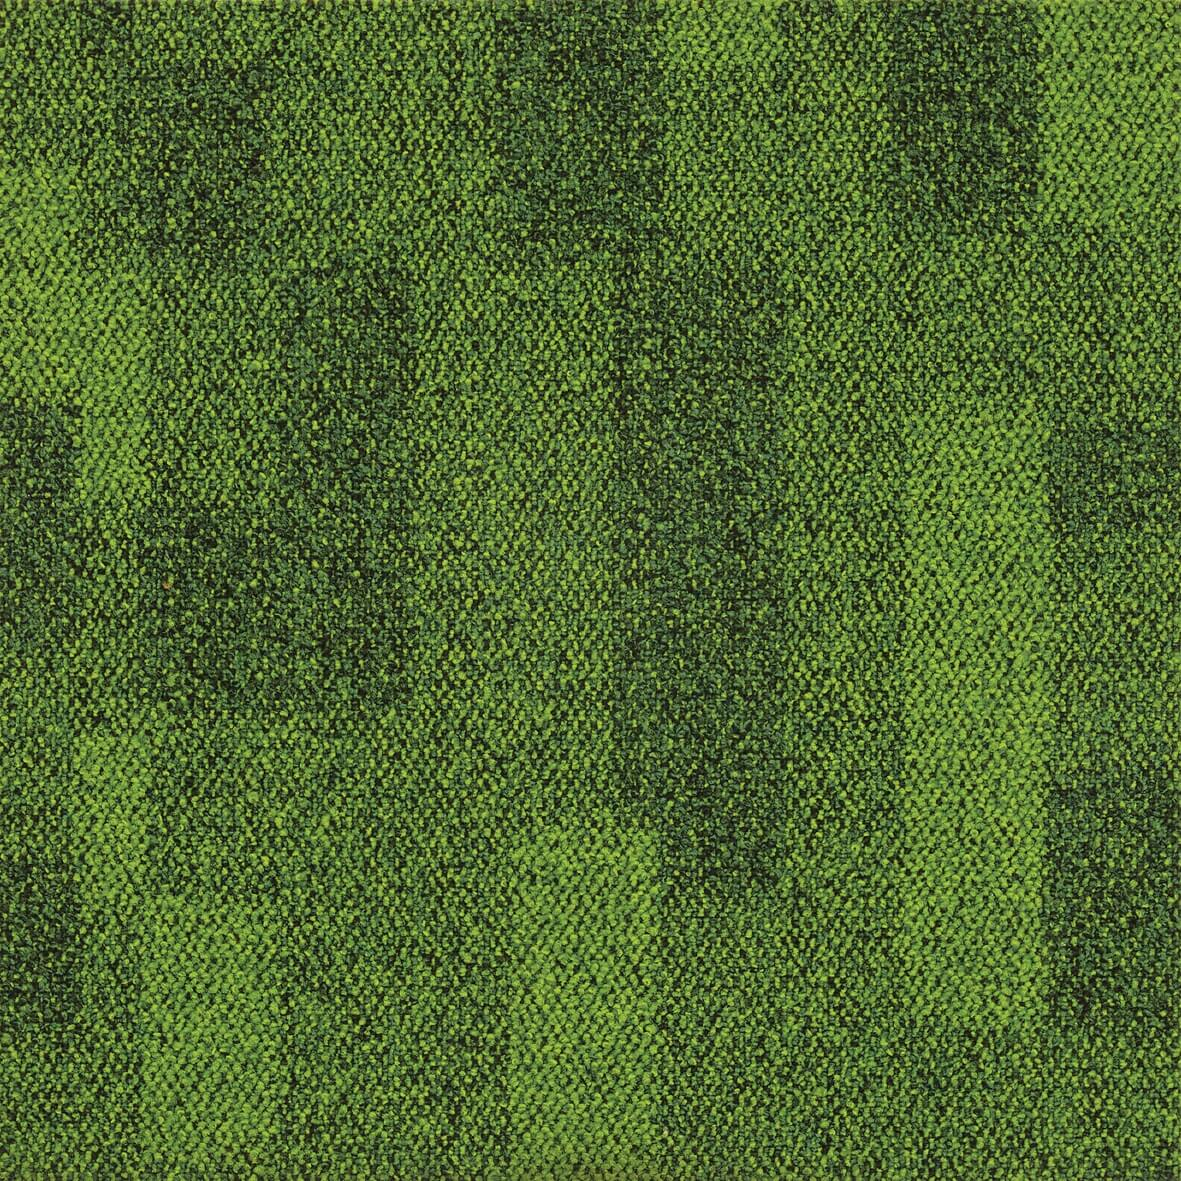 SHF07_GRASS Collection - Premierfloor Shift/Tropical